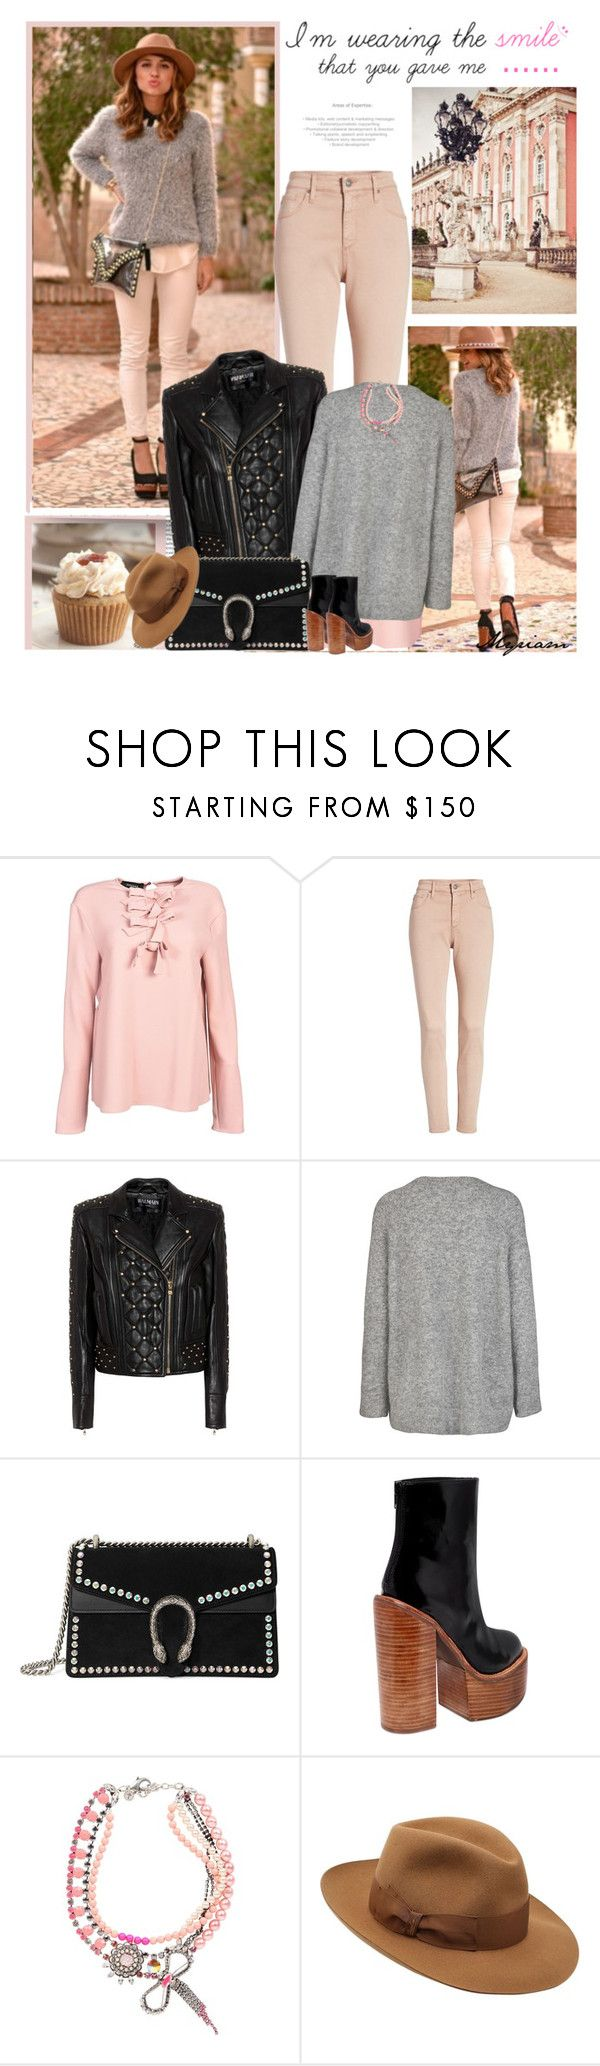 """cool girl in jacket leather"" by lovemeforthelife-myriam ❤ liked on Polyvore featuring Rochas, AG Adriano Goldschmied, Balmain, Gucci, Jeffrey Campbell, REMINISCENCE and Borsalino"